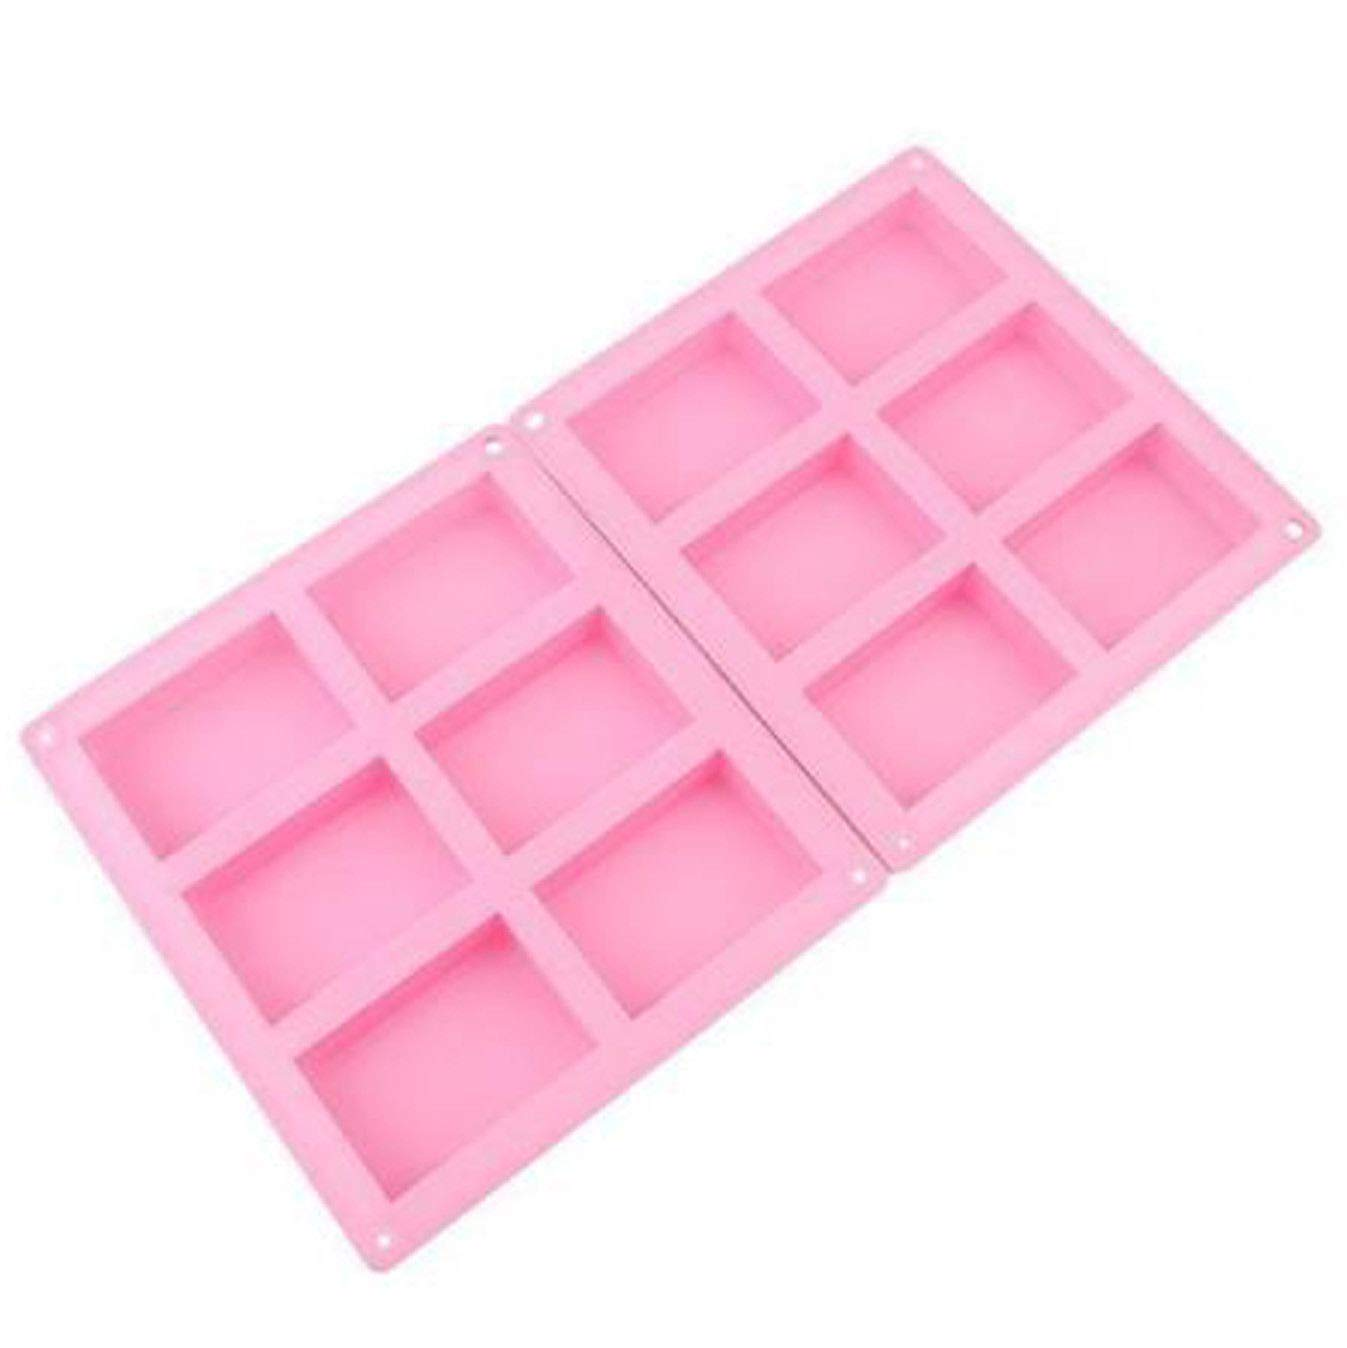 Silicone Rectangle Soap Making Molds 2 Packs,Baking DIY Mold for Chocolate,Candle Making and Polymer Clay,Easy to Clean